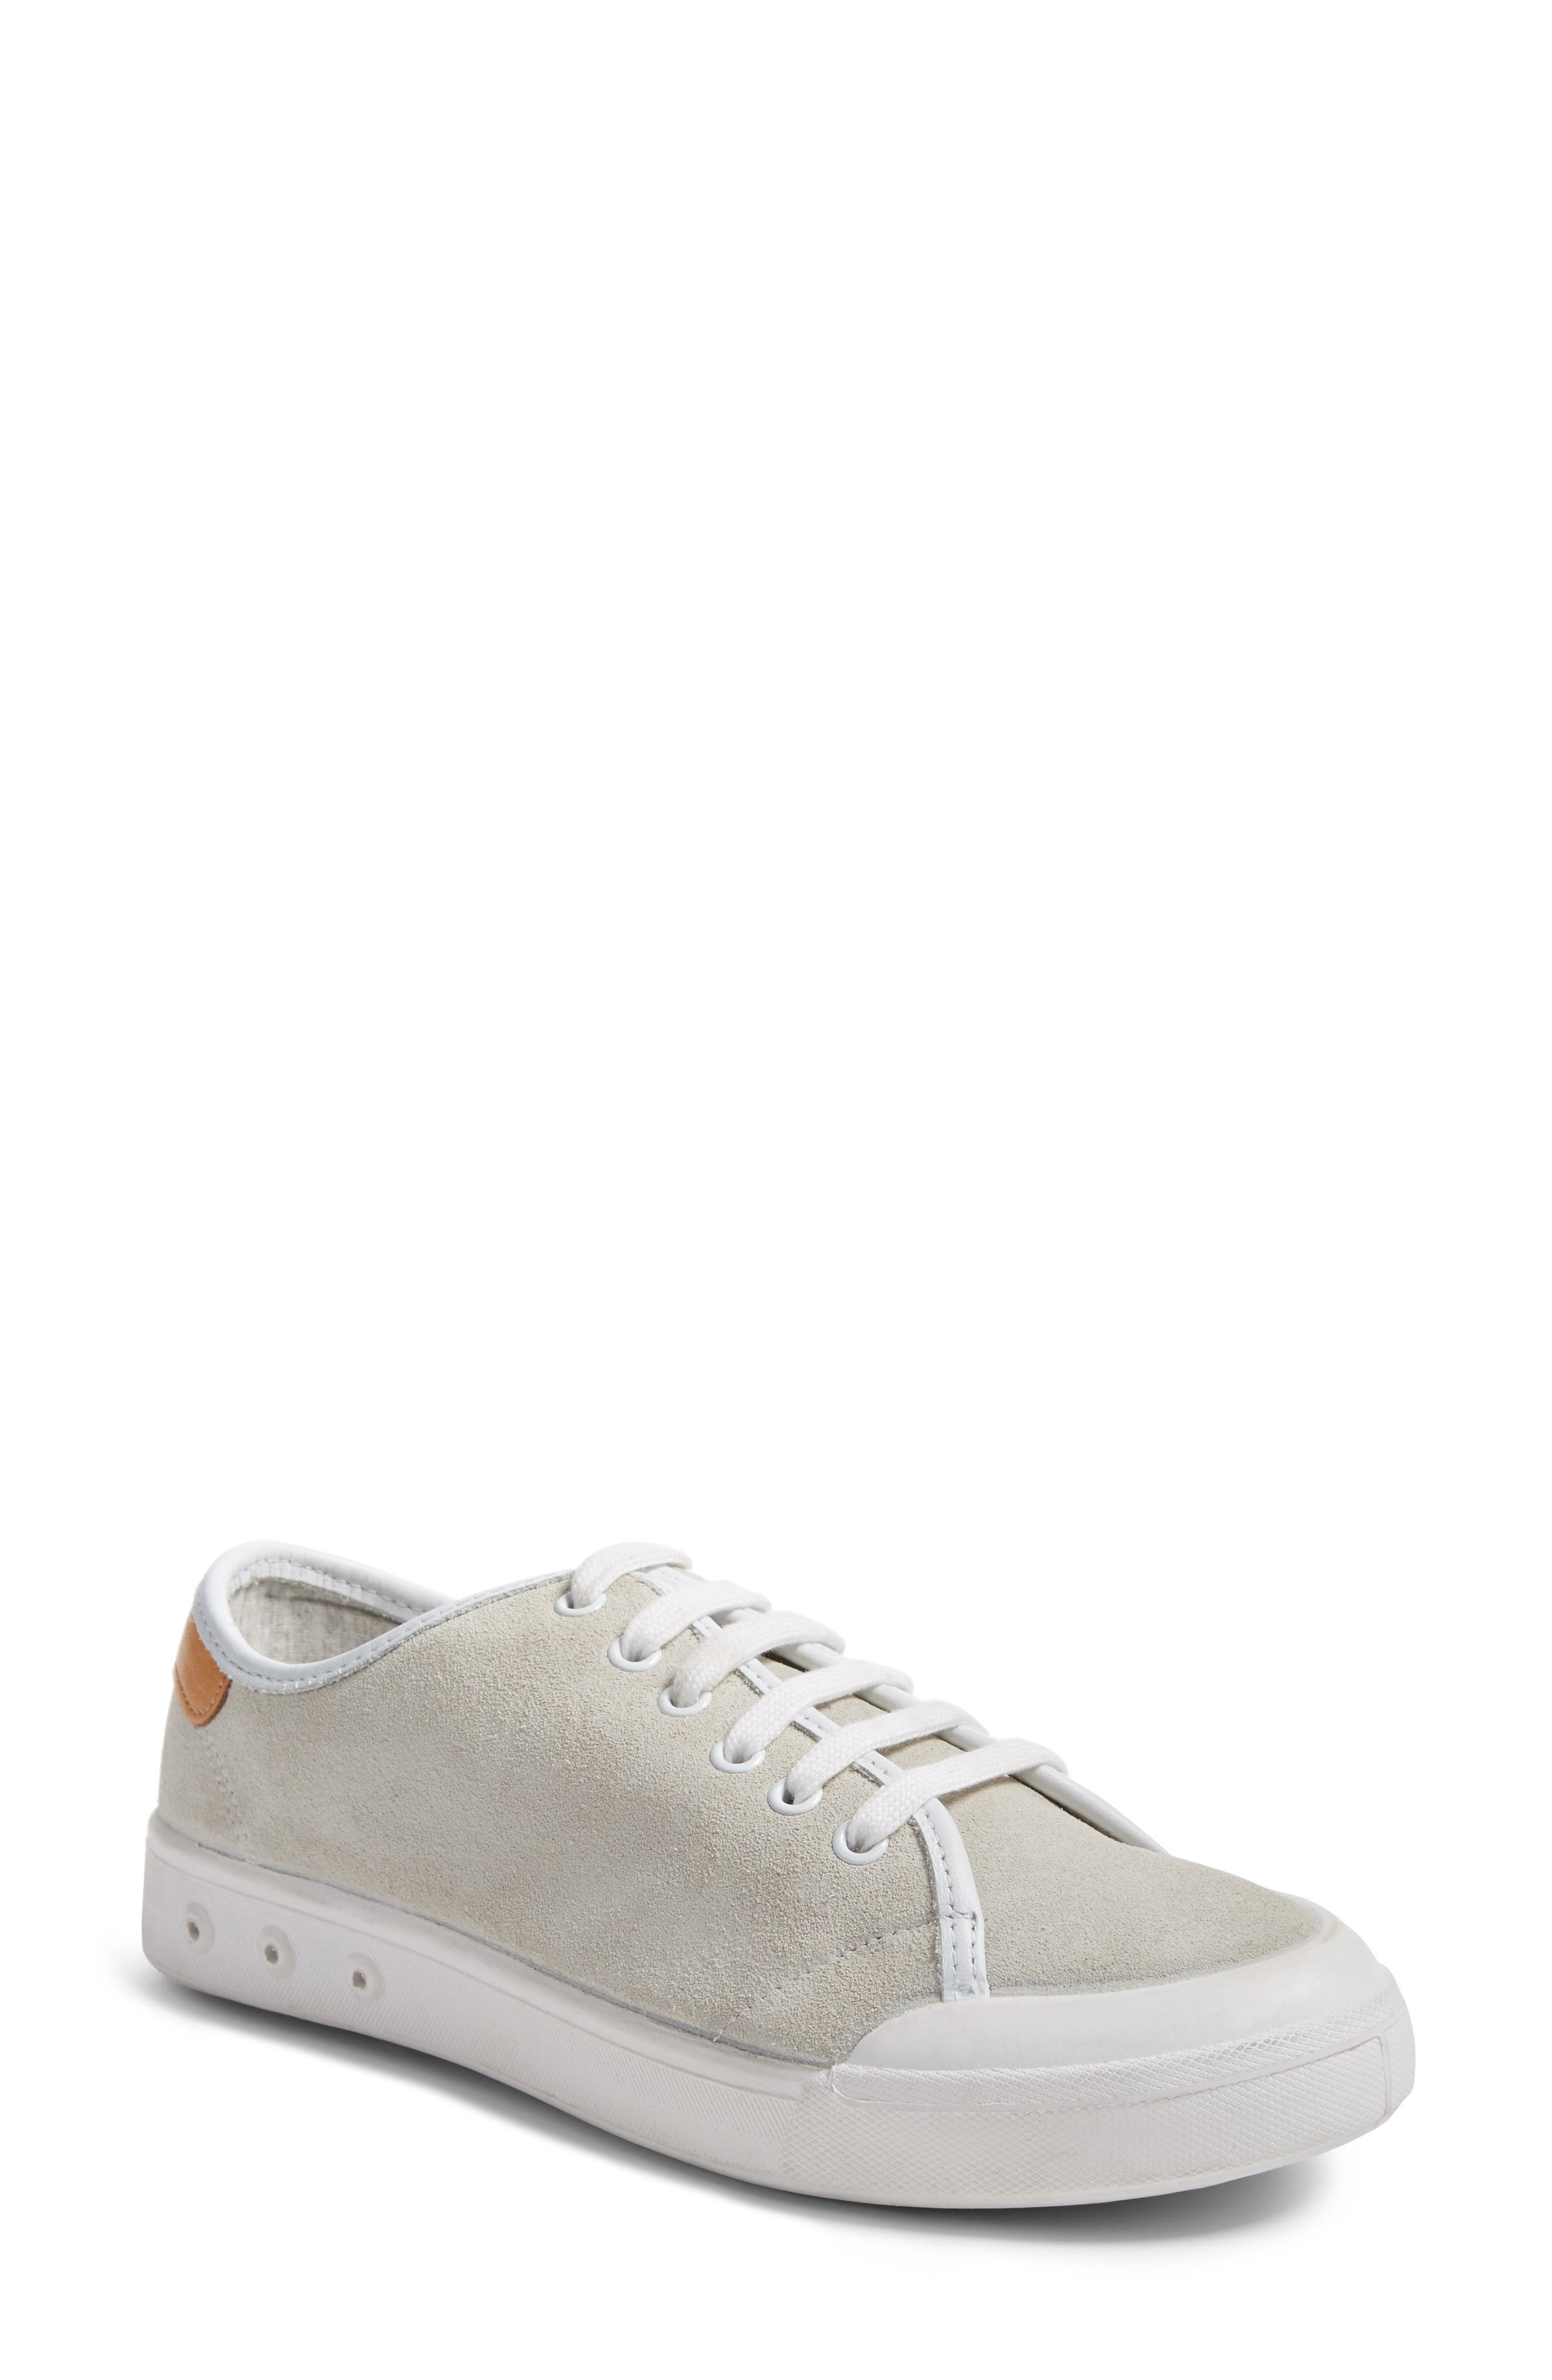 Standard Issue Sneaker,                         Main,                         color,